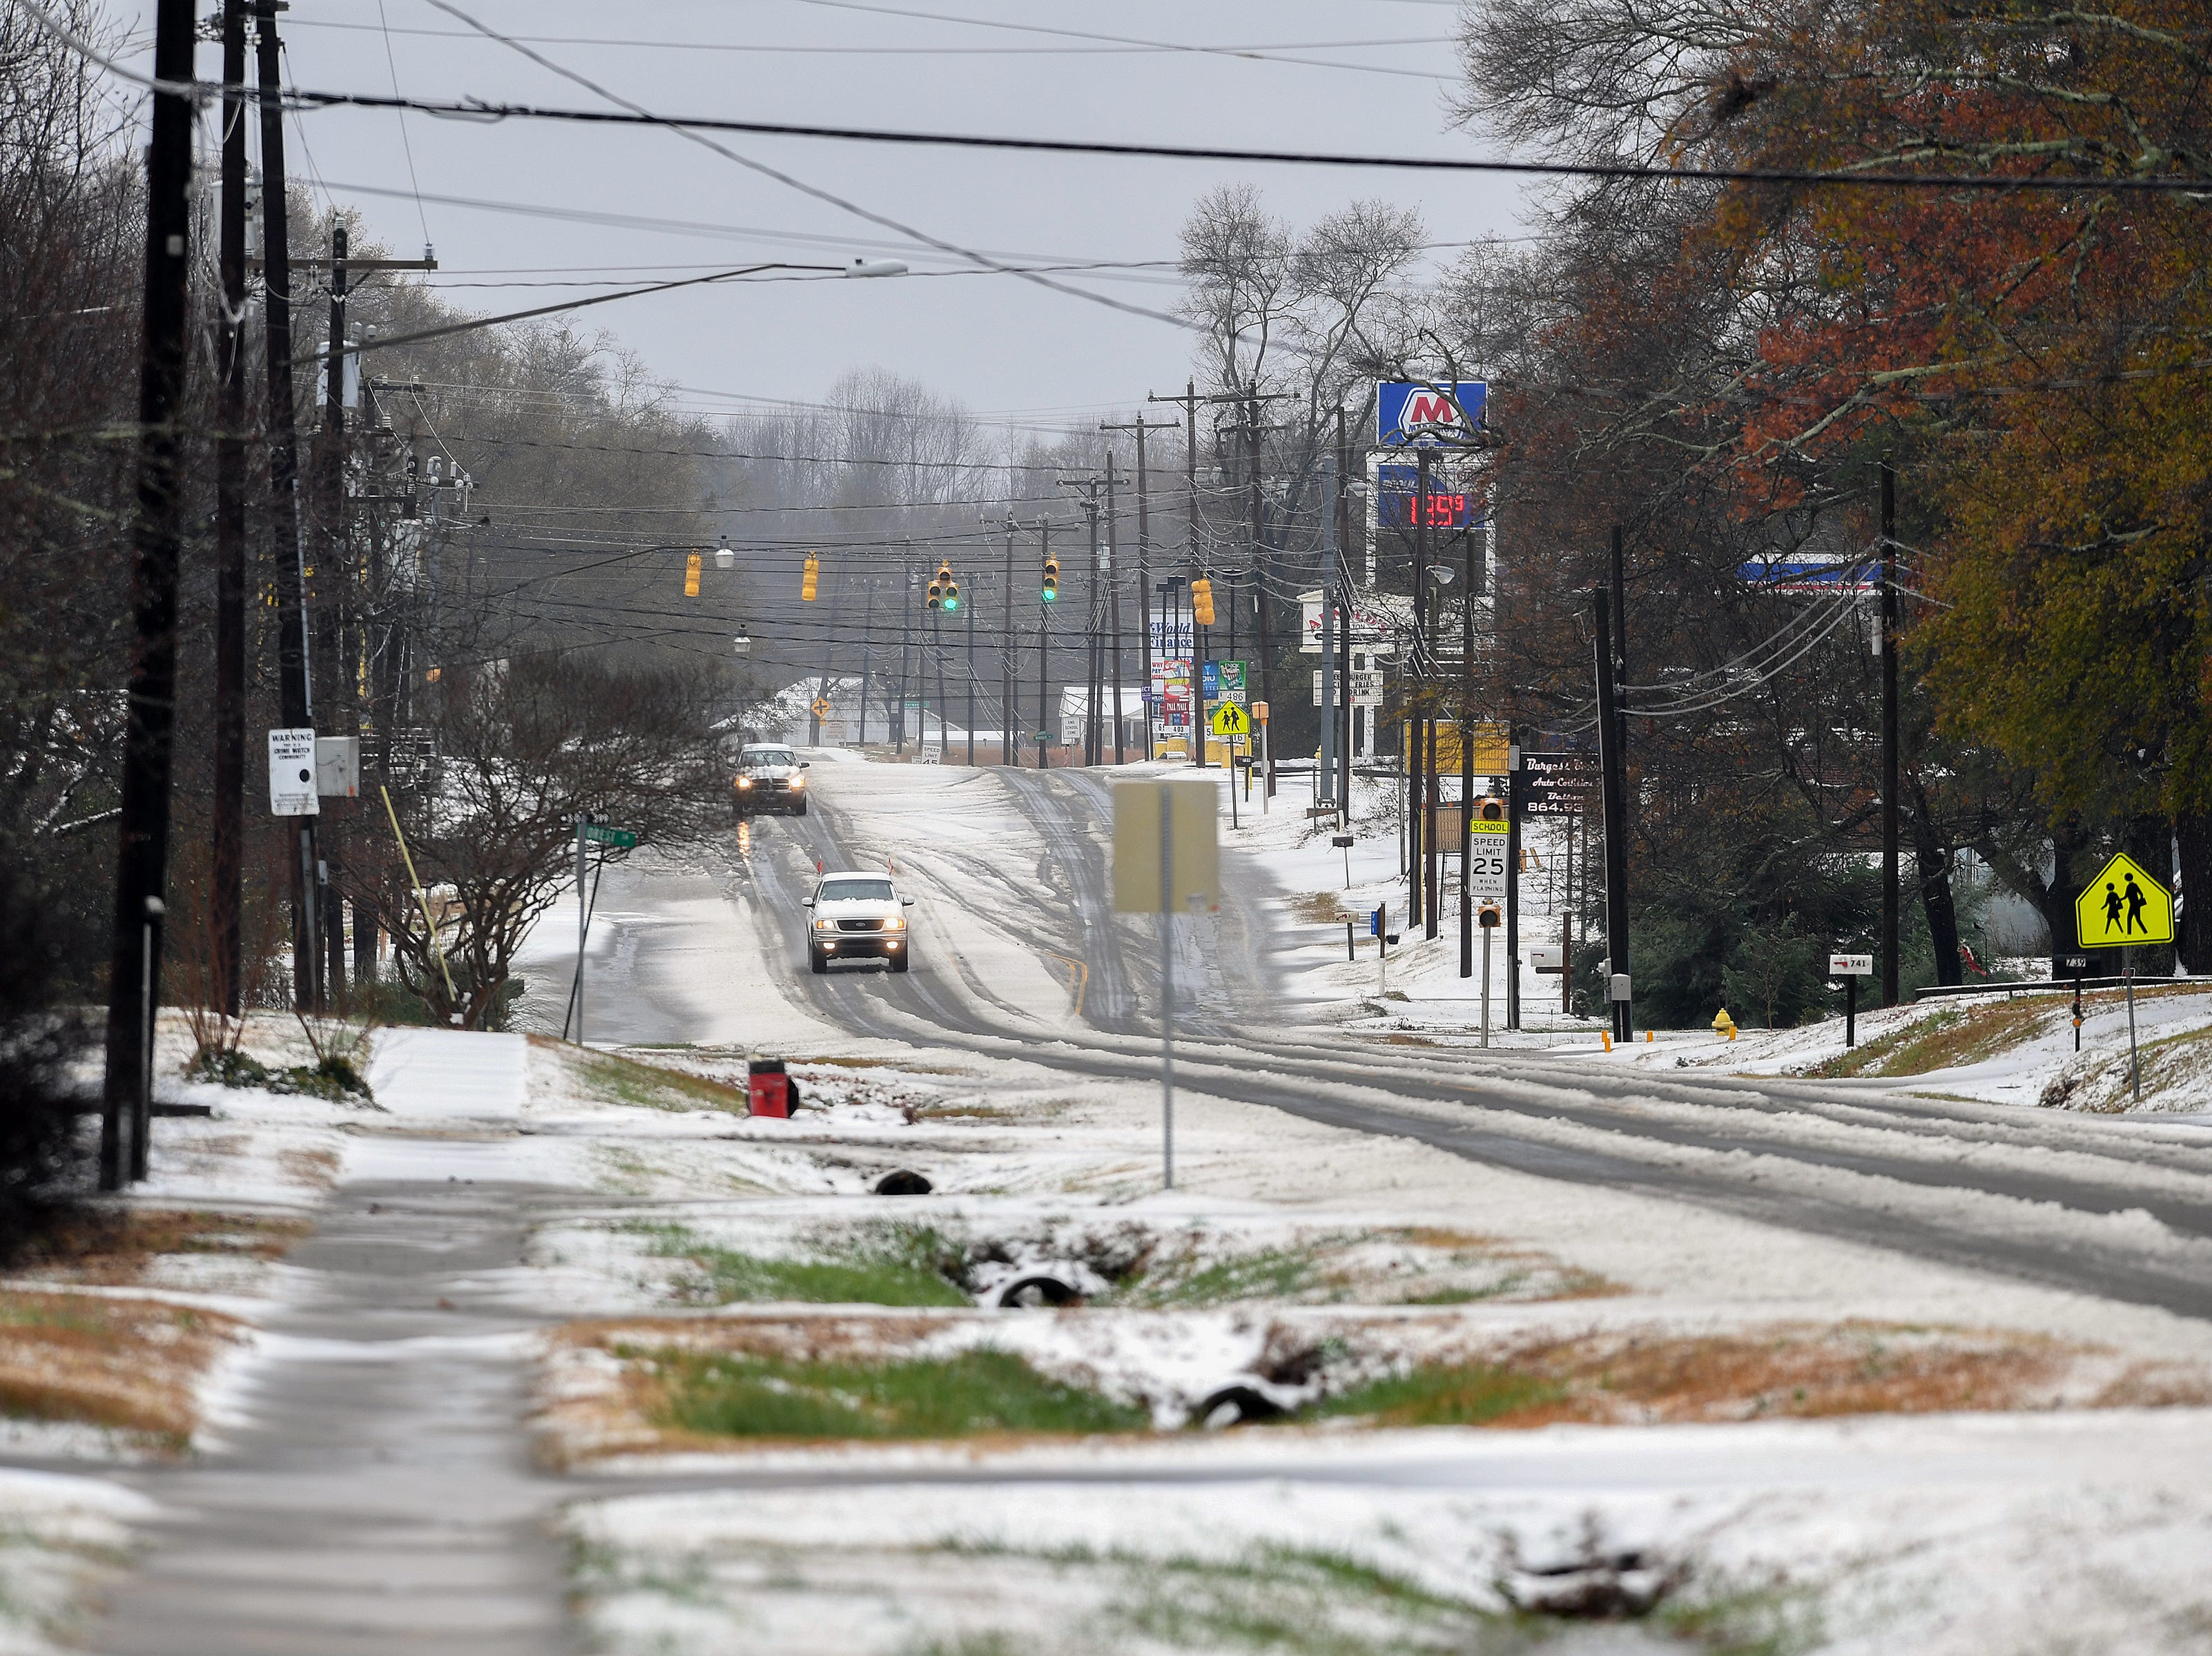 Sleet covers the street in Belton after a layer fell early Sunday December 9, 2018.